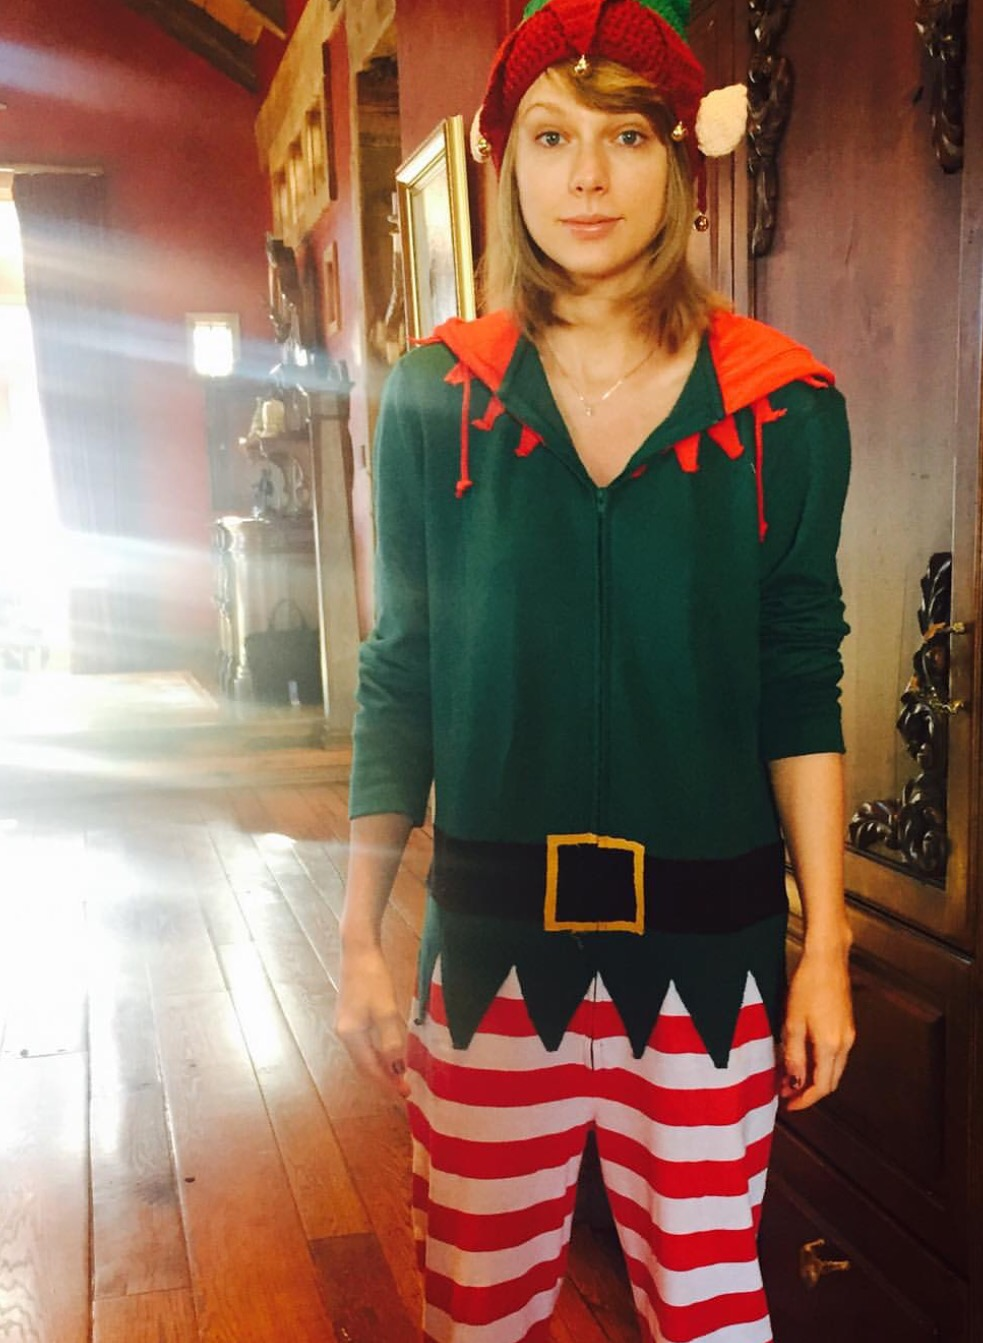 Taylor Swift Posts Elf Onesie Photo Tireball Backpage News Rumors Opinions And More